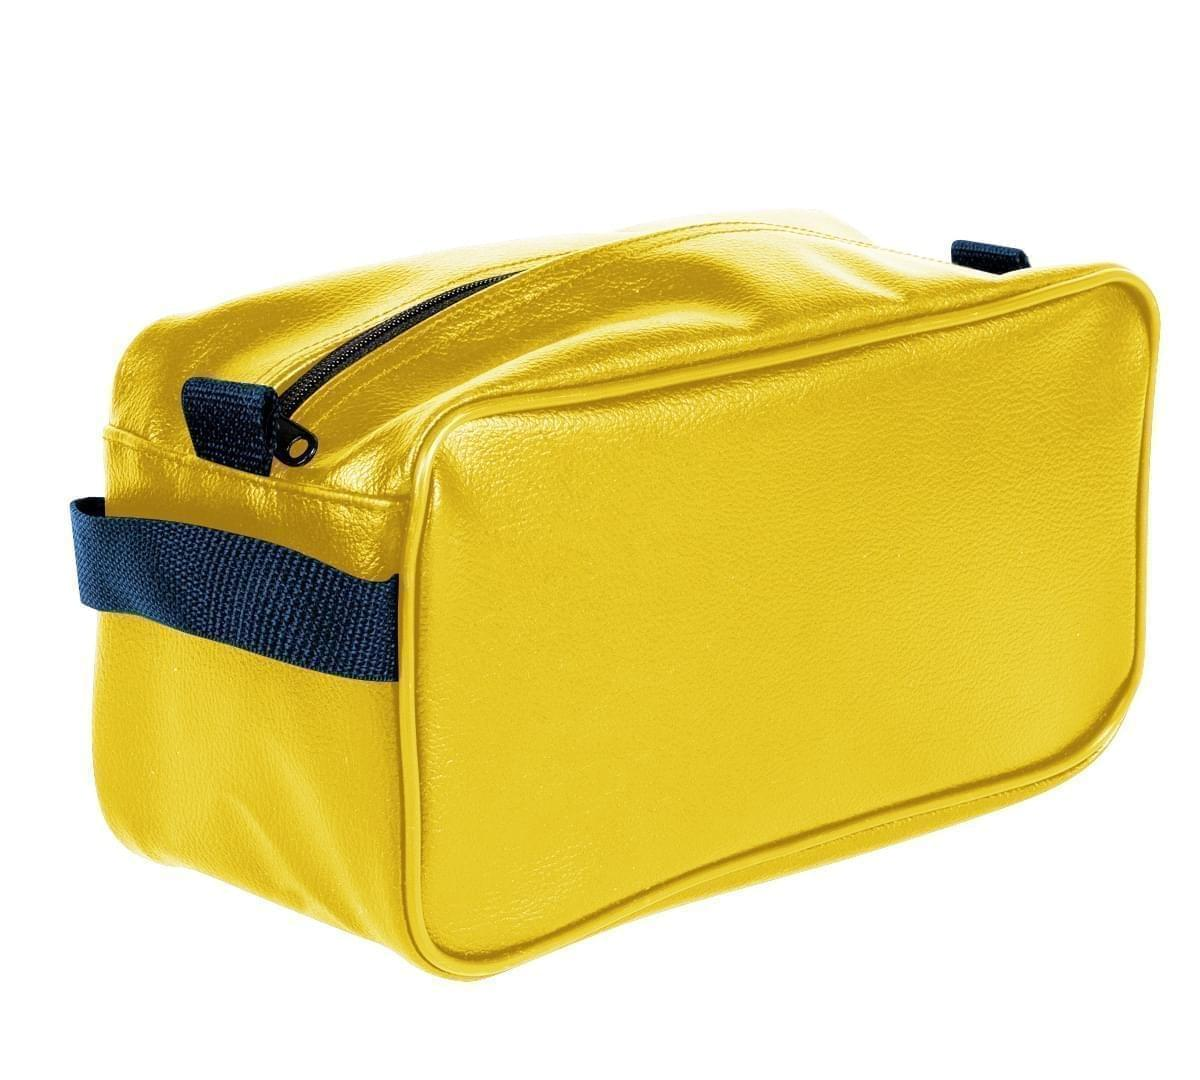 USA Made Cosmetic & Toiletry Cases, Gold-Navy, 3000996-A4Z